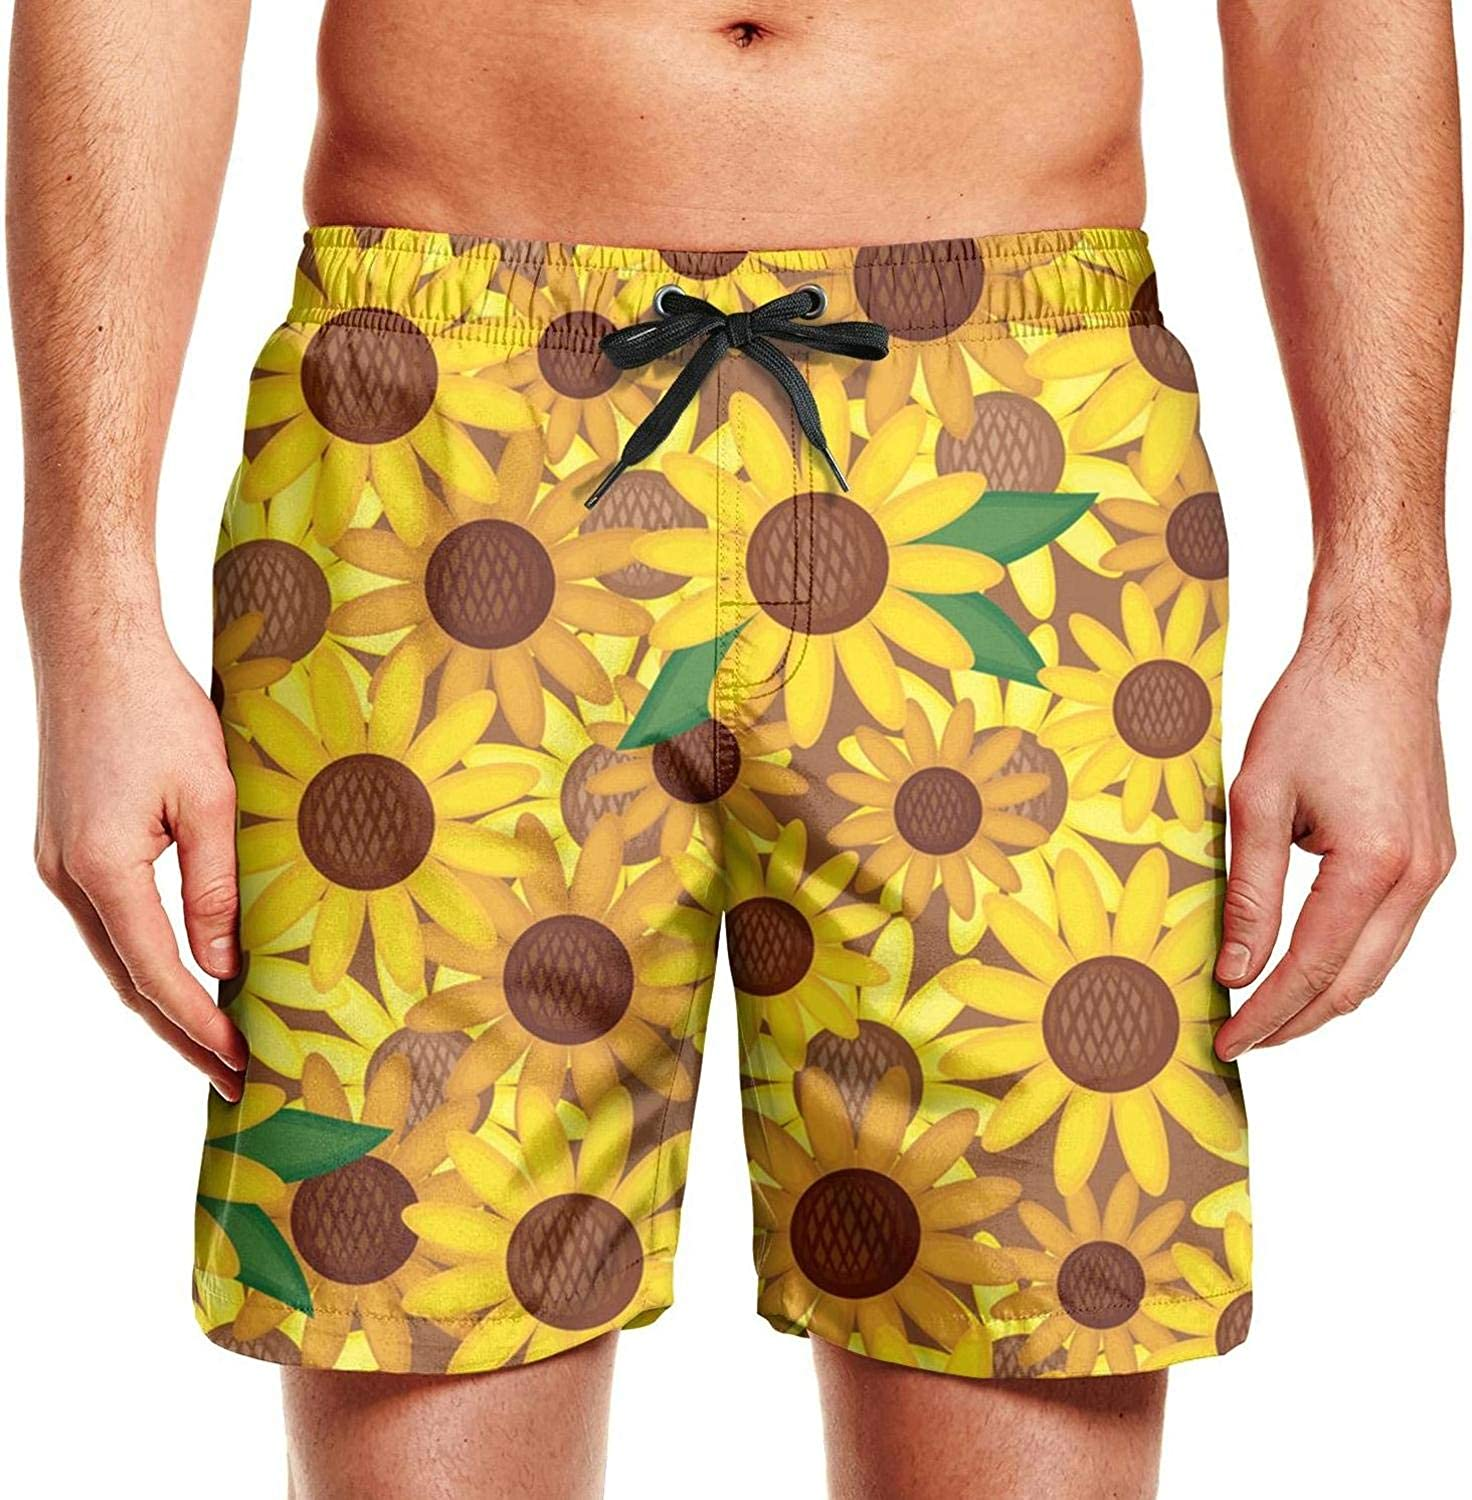 WIHVE Mens Swim Trunks Cute Cactus Tropical Plant Black Beach Board Shorts with Lining